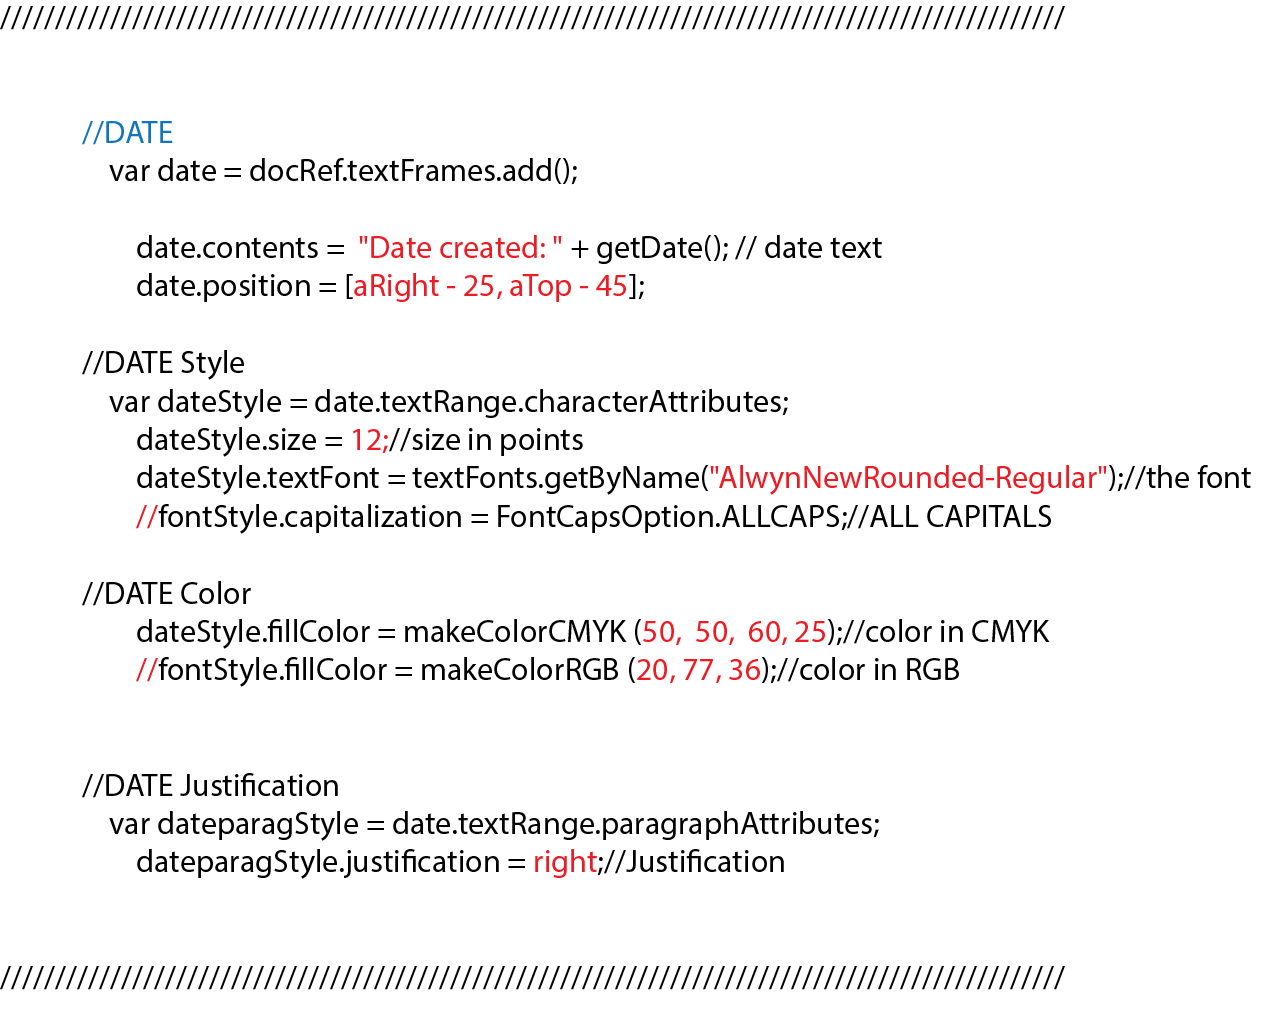 """//DATE var date = docRef.textFrames.add(); date.contents = """"Date created: """" + getDate(); // date text date.position = [aRight - 25, aTop - 45]; //DATE Style var dateStyle = date.textRange.characterAttributes; dateStyle.size = 12;//size in points dateStyle.textFont = textFonts.getByName(""""AlwynNewRounded-Regular"""");//the font //fontStyle.capitalization = FontCapsOption.ALLCAPS;//ALL CAPITALS //DATE Color dateStyle.fillColor = makeColorCMYK (50, 50, 60, 25);//color in CMYK //fontStyle.fillColor = makeColorRGB (20, 77, 36);//color in RGB //DATE Justification var dateparagStyle = date.textRange.paragraphAttributes; dateparagStyle.justification = right;//Justification"""